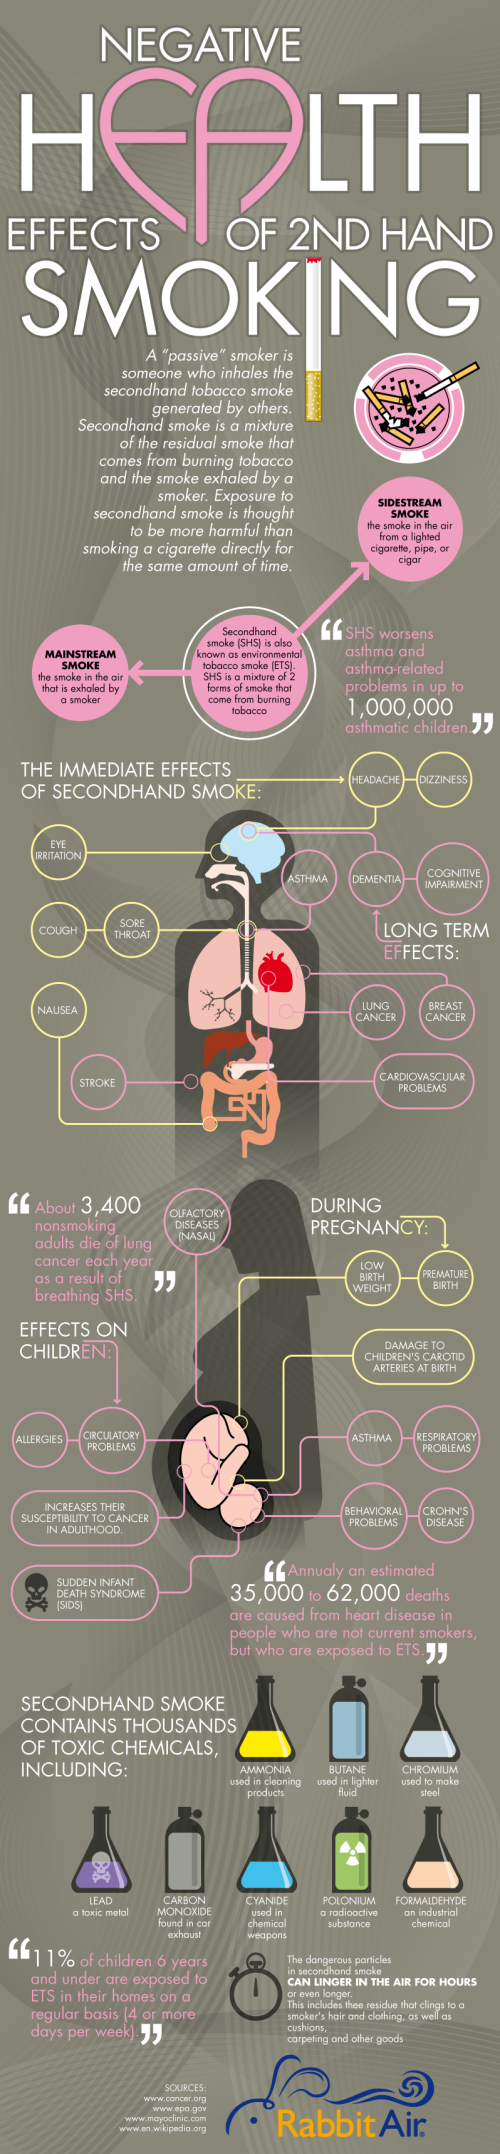 Negative-Effects-Of-Second-Hand-Smoking-Infographic-infographicsmania.png